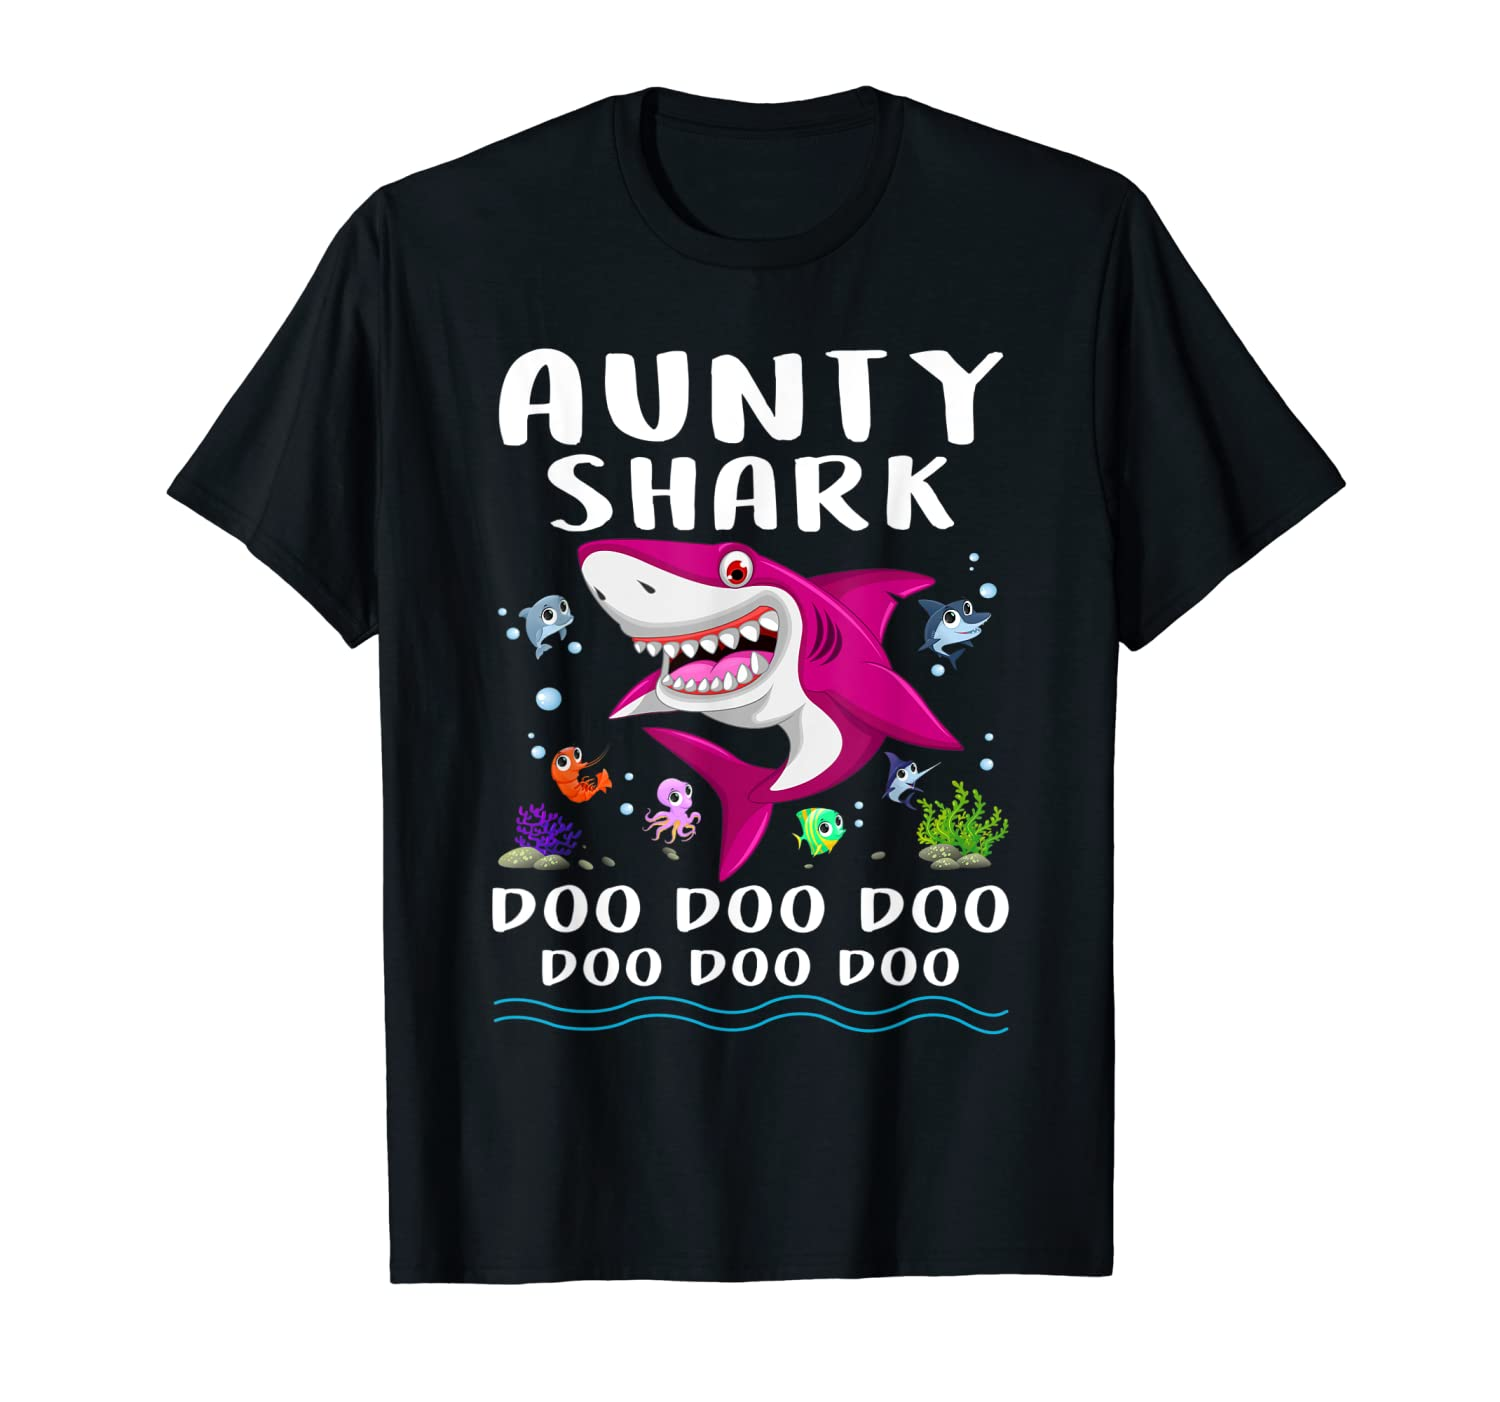 Aunty Shark T-Shirt Doo Doo Doo – Mothers Day Gift T-Shirt